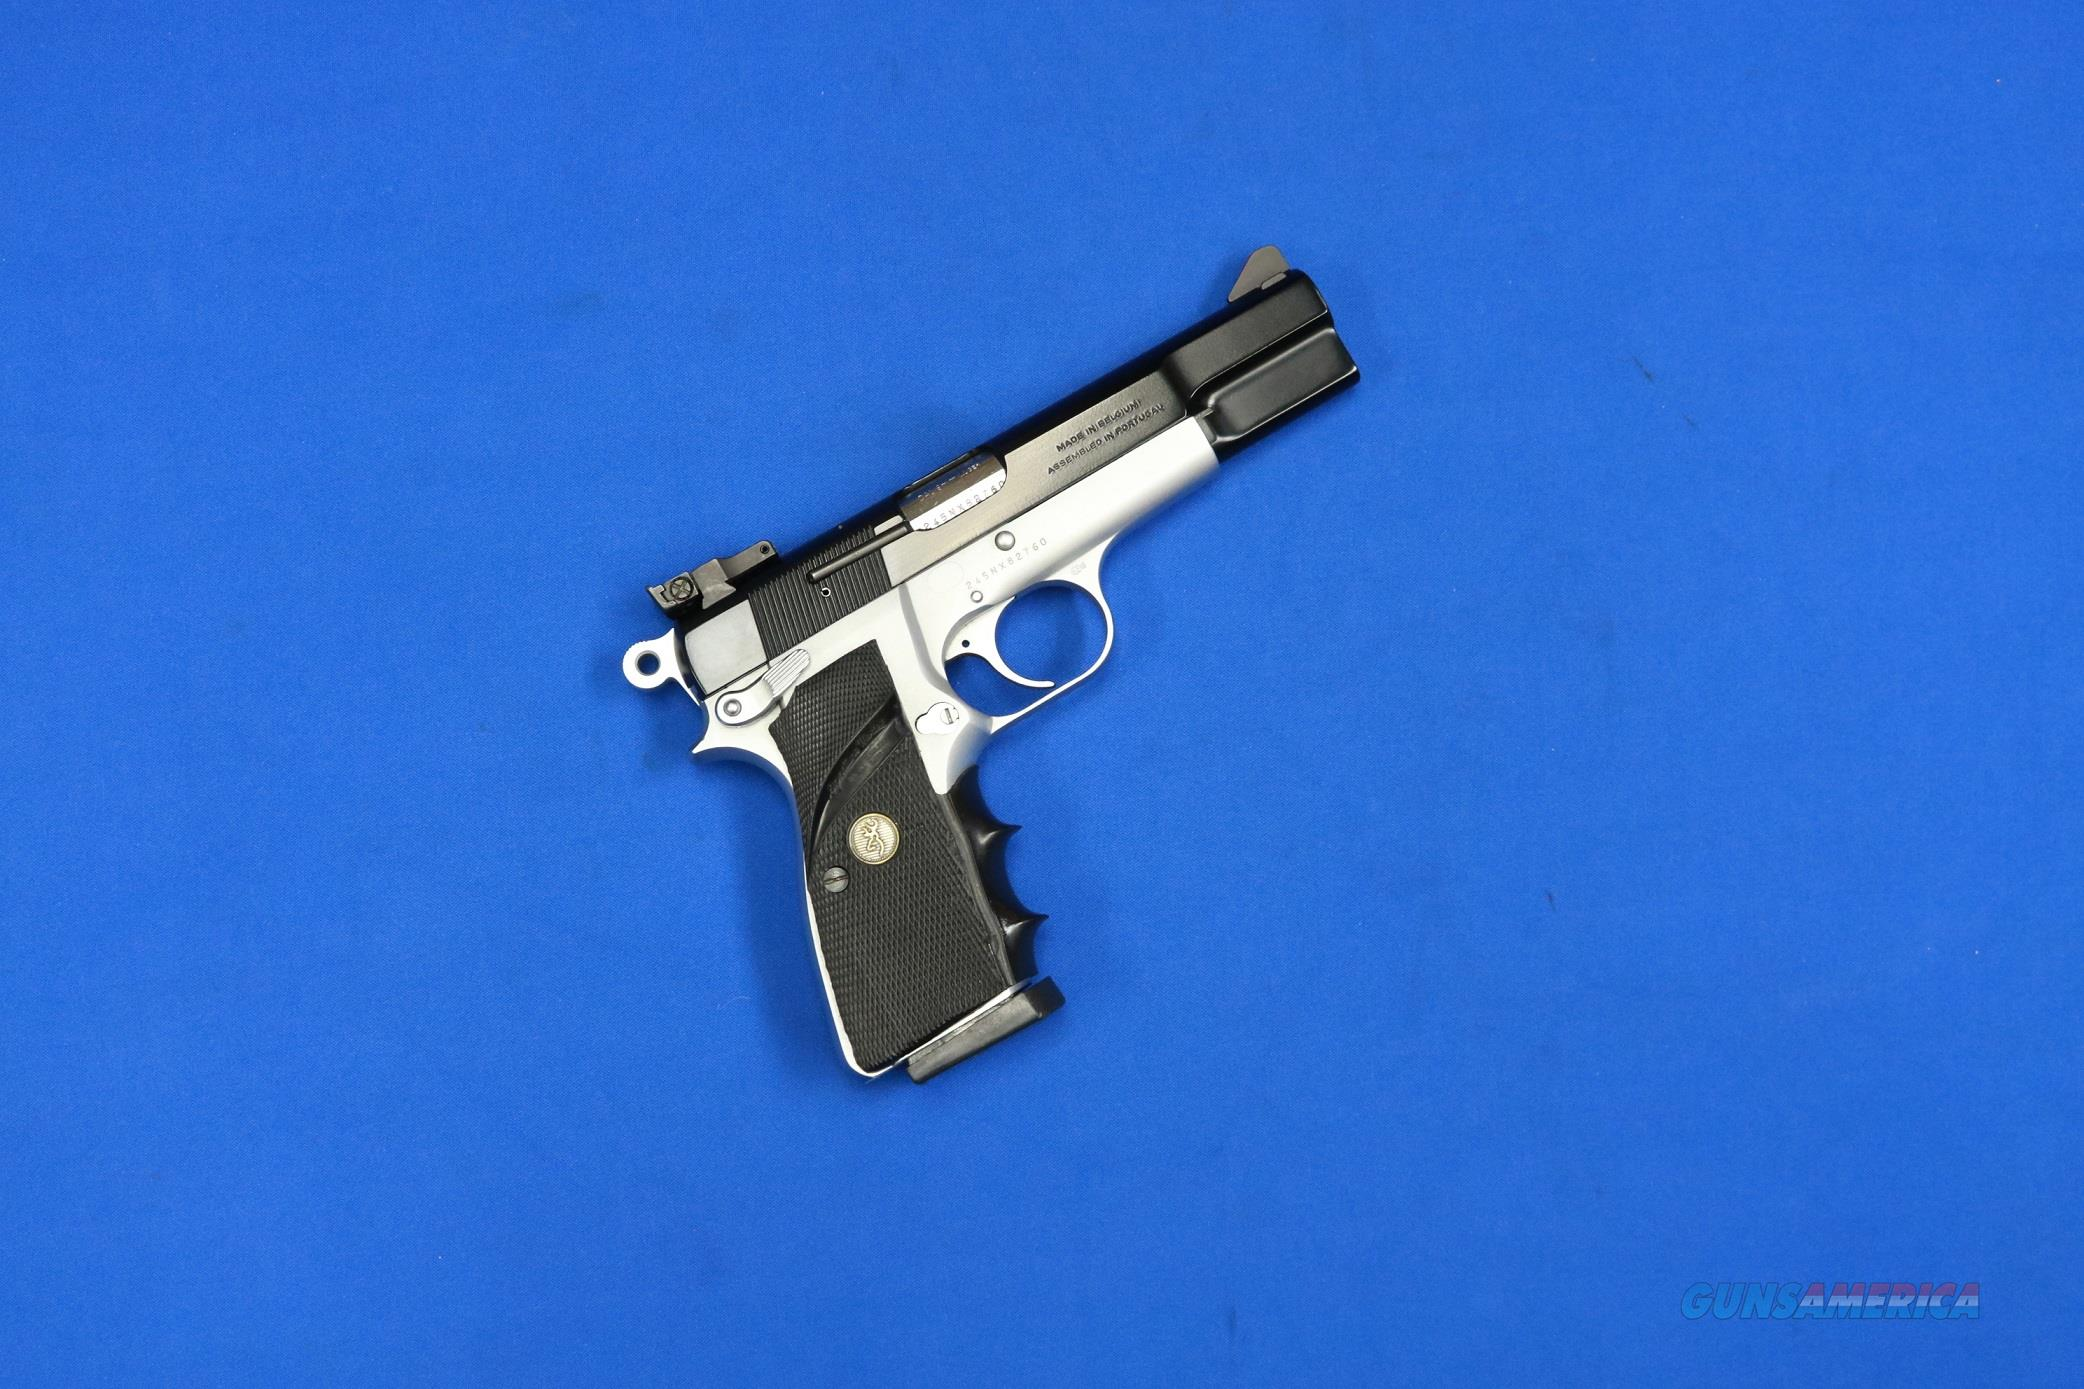 BROWNING HI POWER PRACTICAL 1993 MFG 9MM ADJ REAR SIGHTS